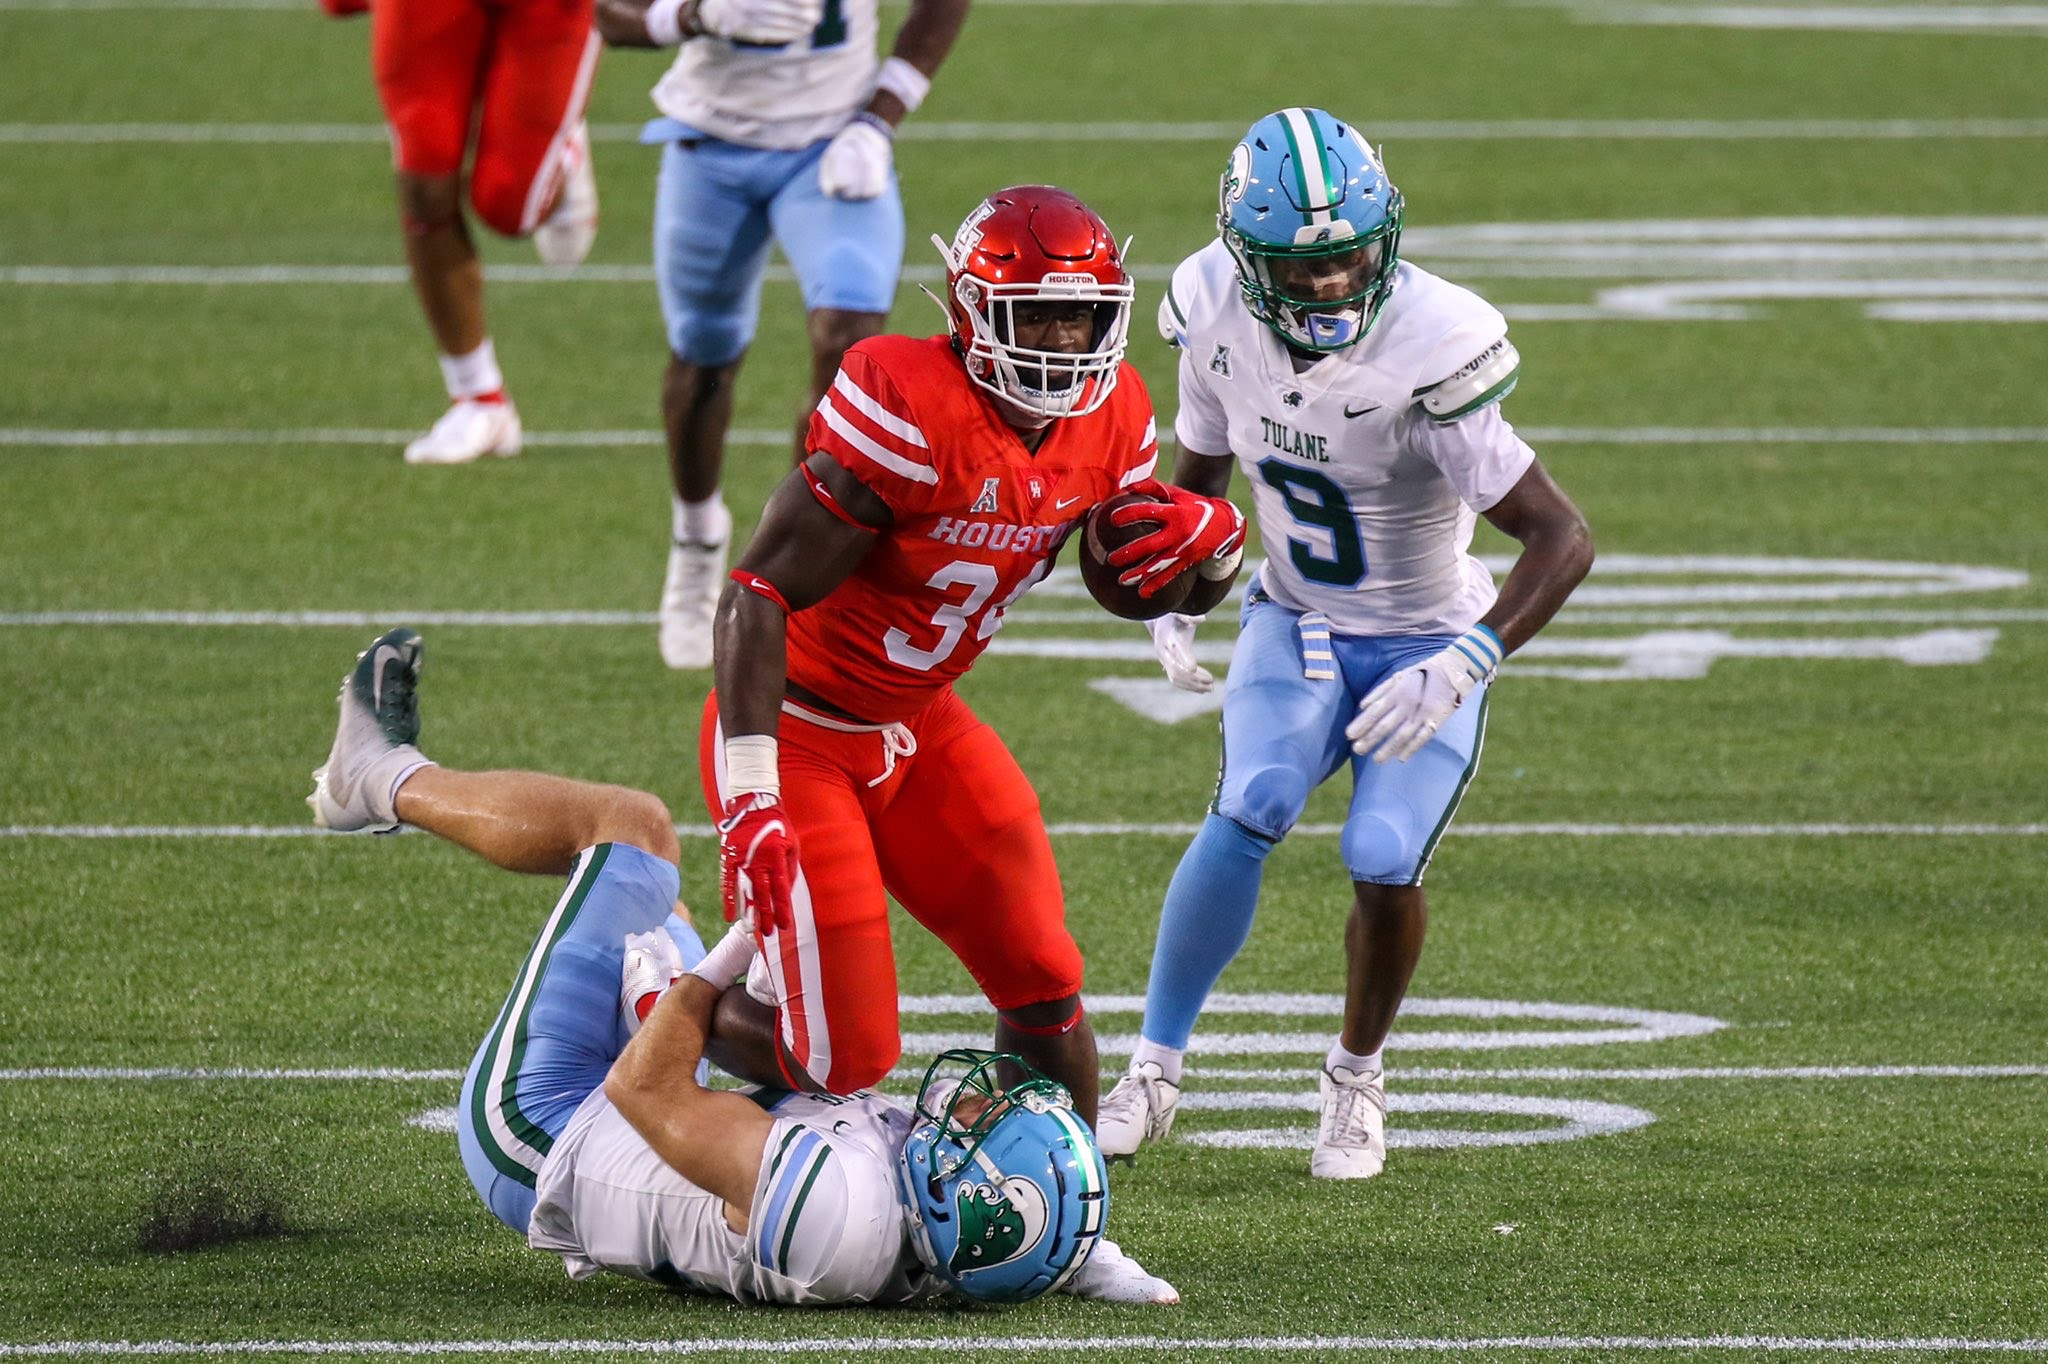 What to Watch: UH looks to bounce back from crushing loss against Rice